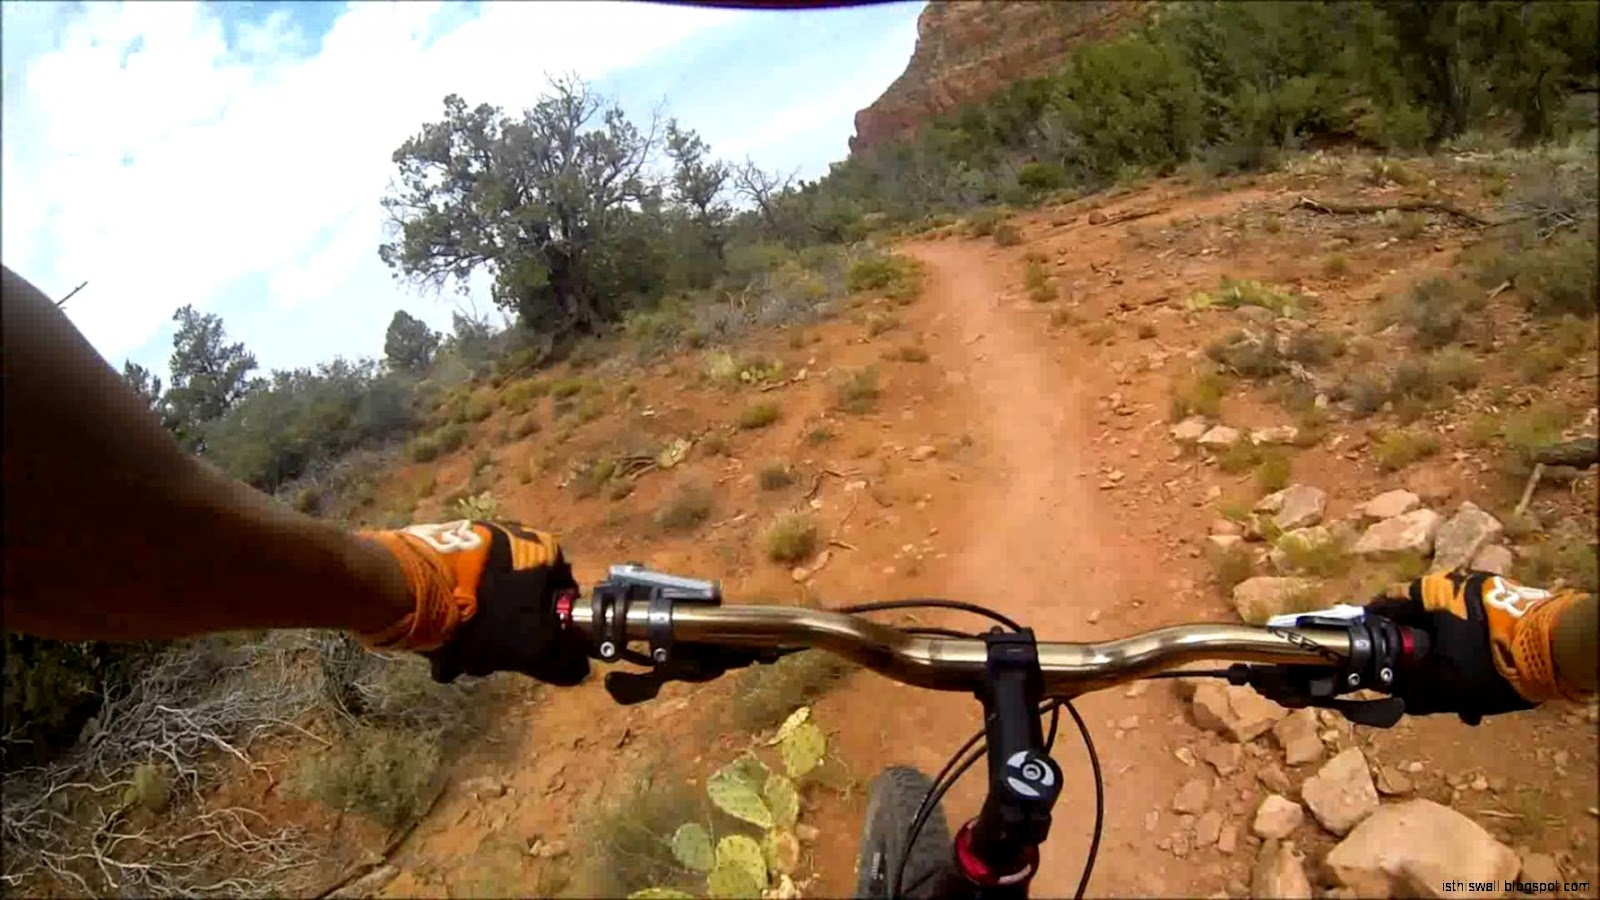 Sedona Mountain biking   YouTube